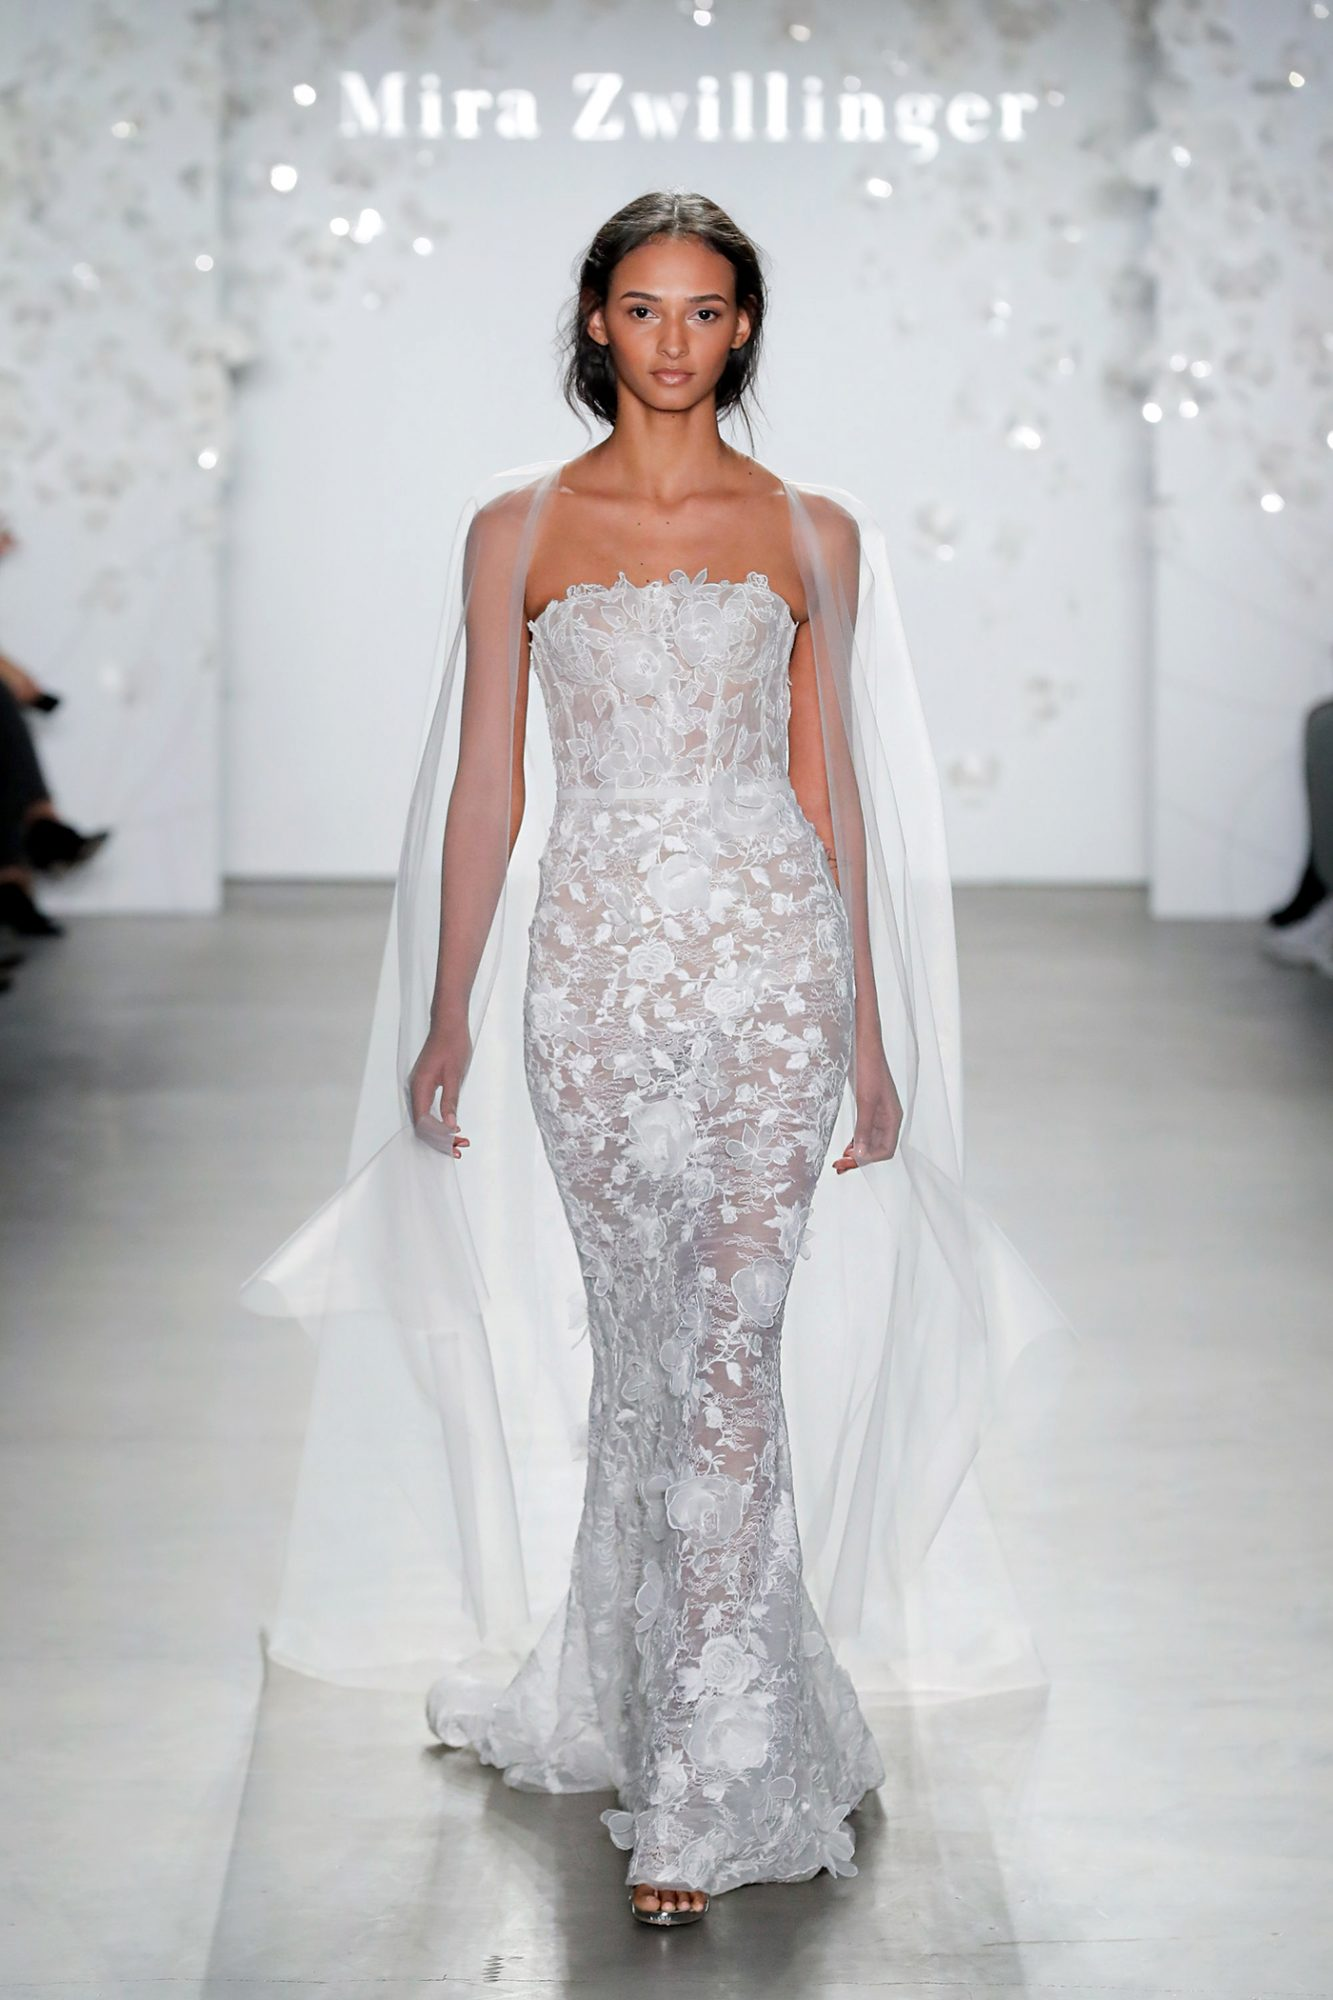 Strapless mermaid wedding dress with 3D floral appliqués and open back, wornwith cape